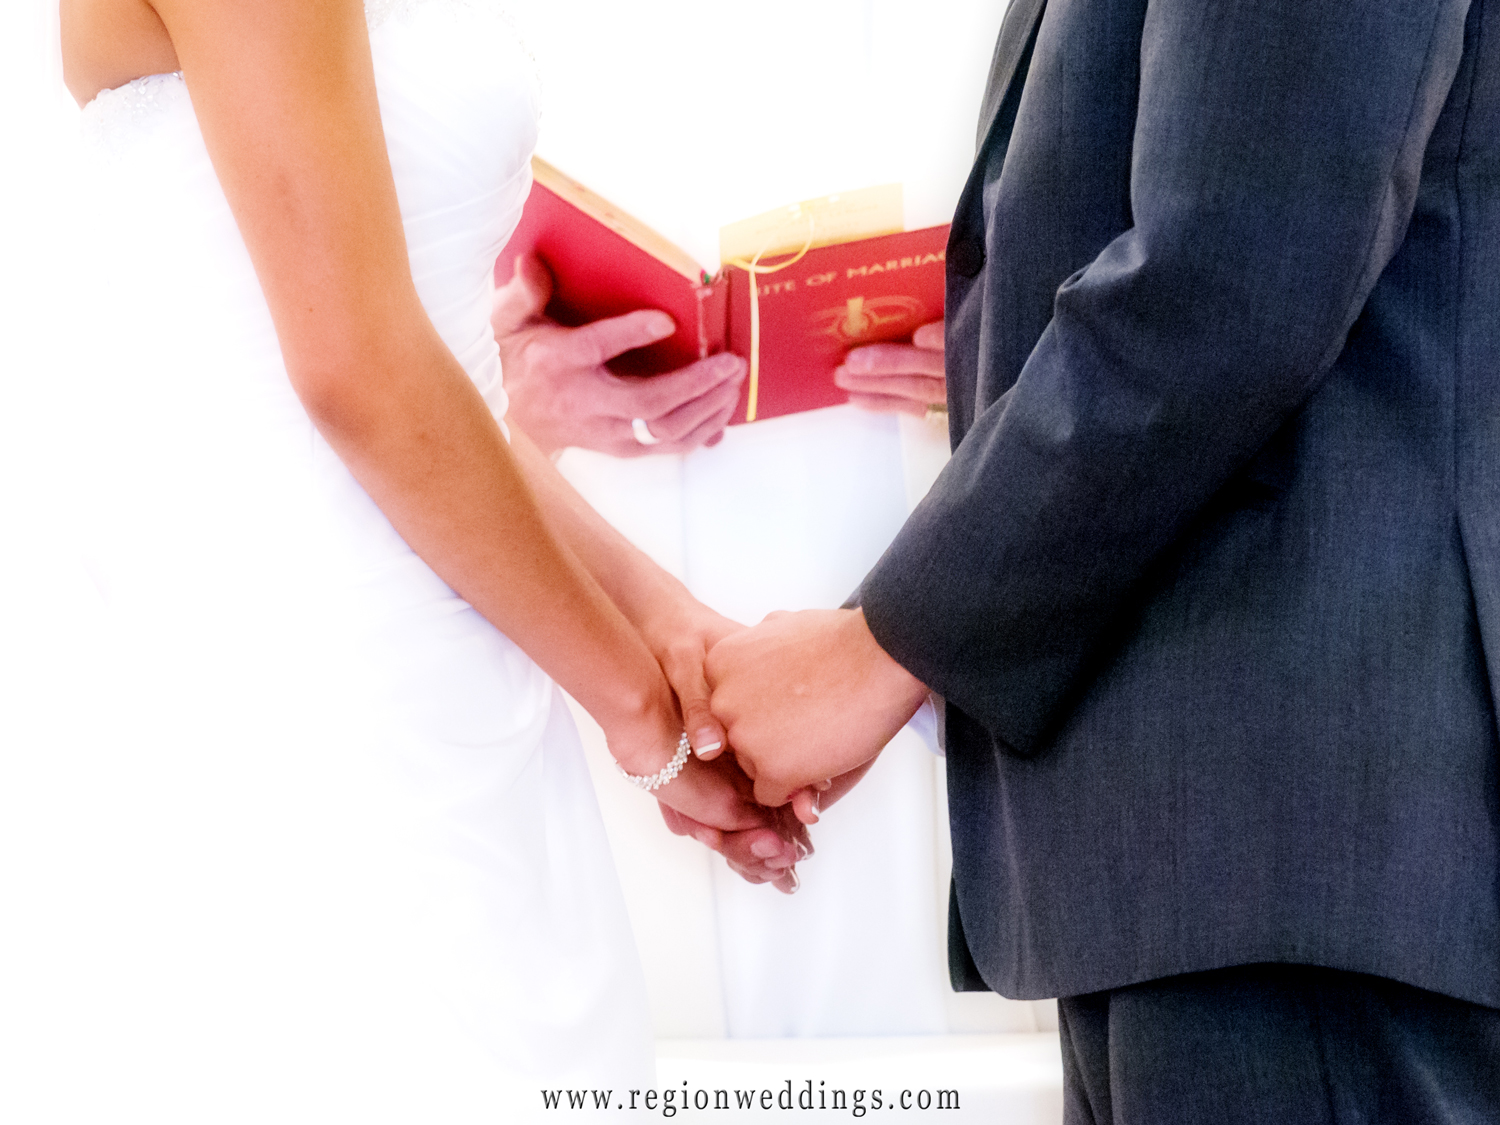 The bride and groom clasp their hands together while the priest reads from a red bible during their church wedding ceremony.